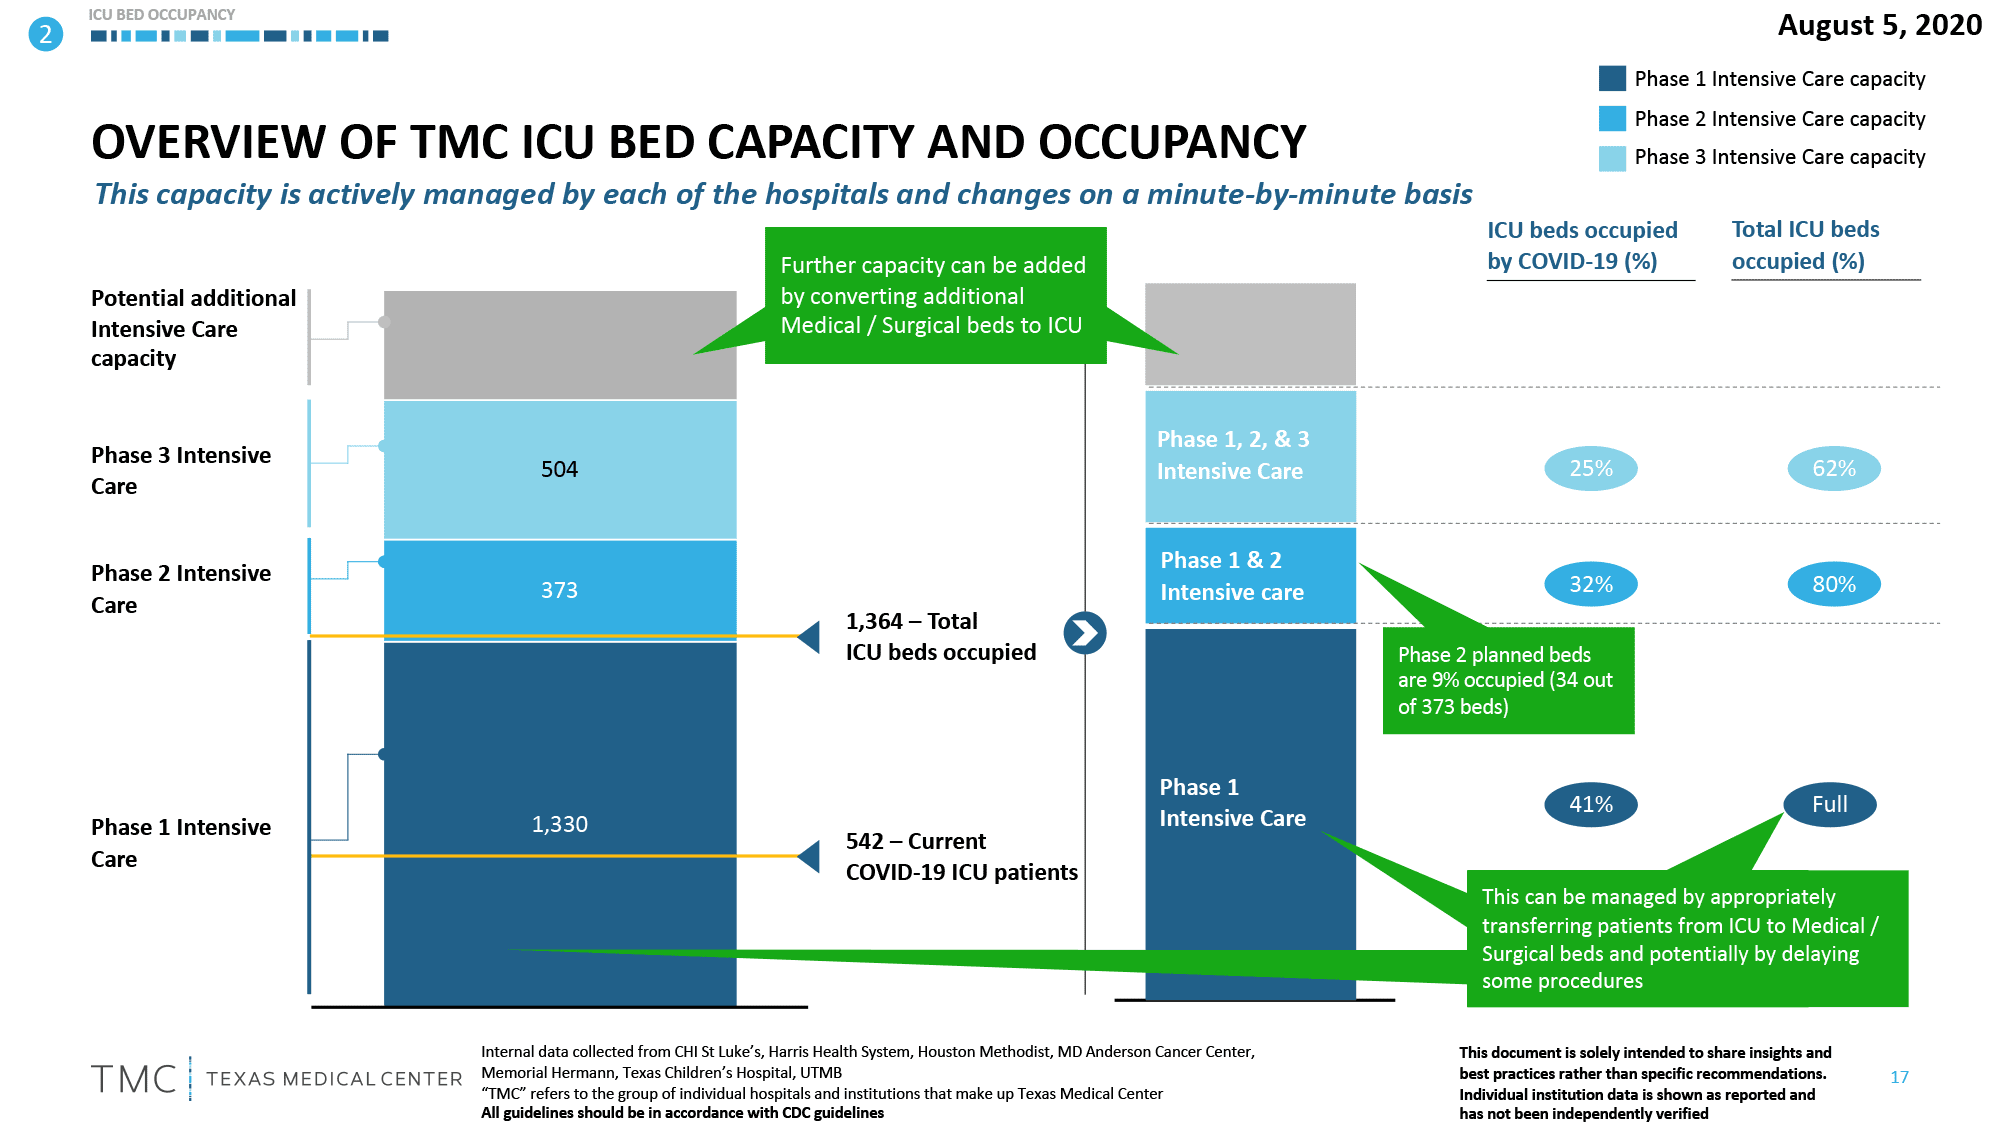 l-Overview-Of-TMC-ICU-Bed-Capacity-And-Occupancy-8-6-2020.png